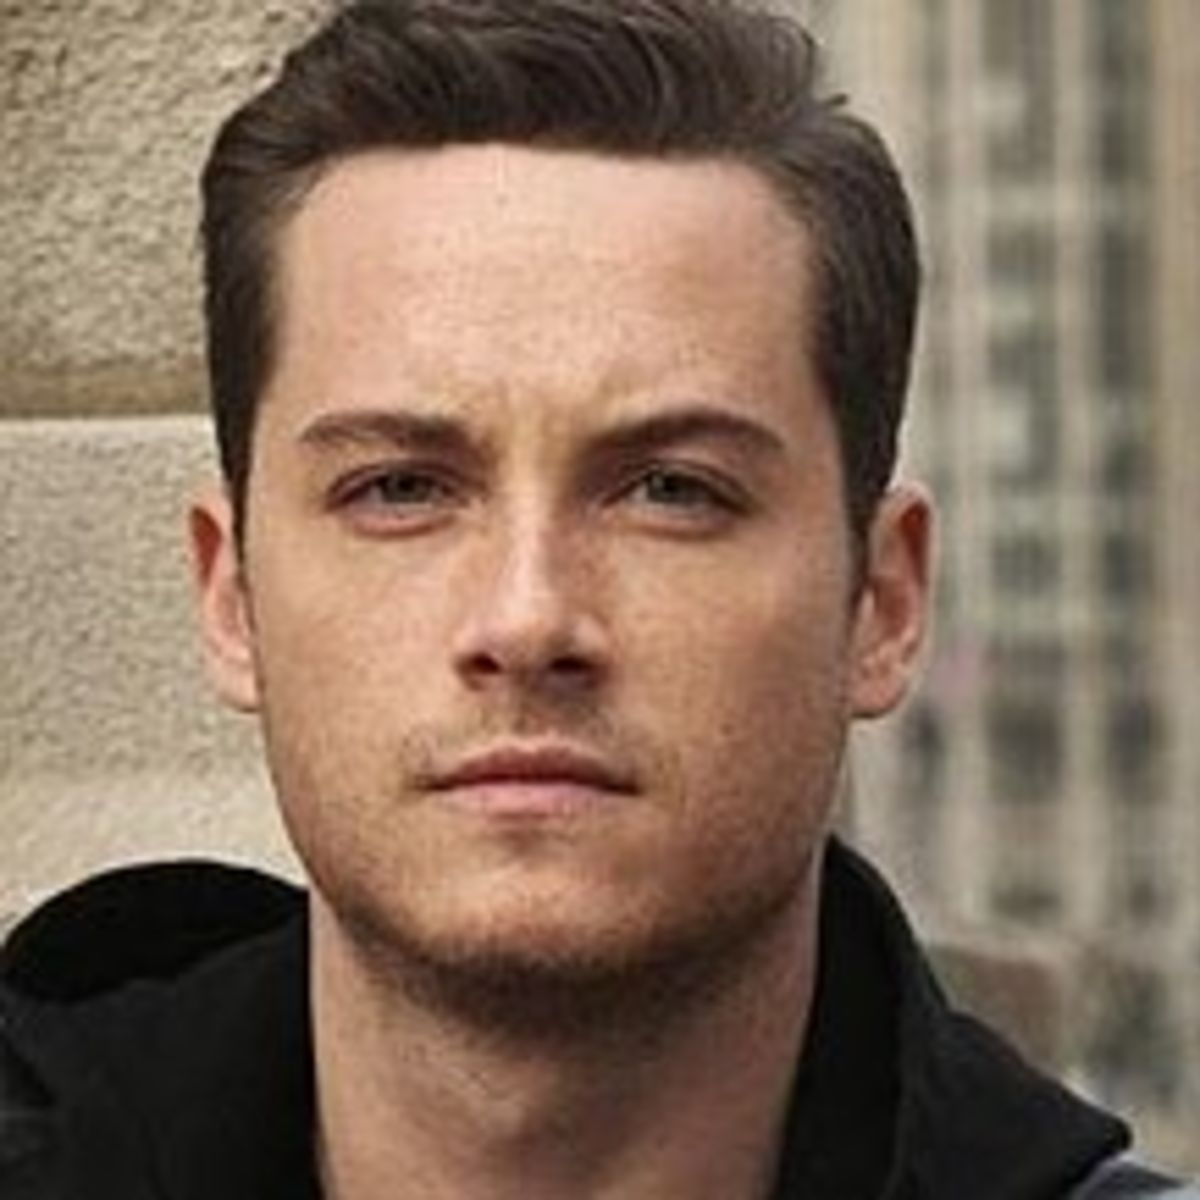 Jesse Lee Soffer Bio, Age, Height, Body Measurements, Movies, Boyfriend, Relationship, Siblings, Married, Net Worth